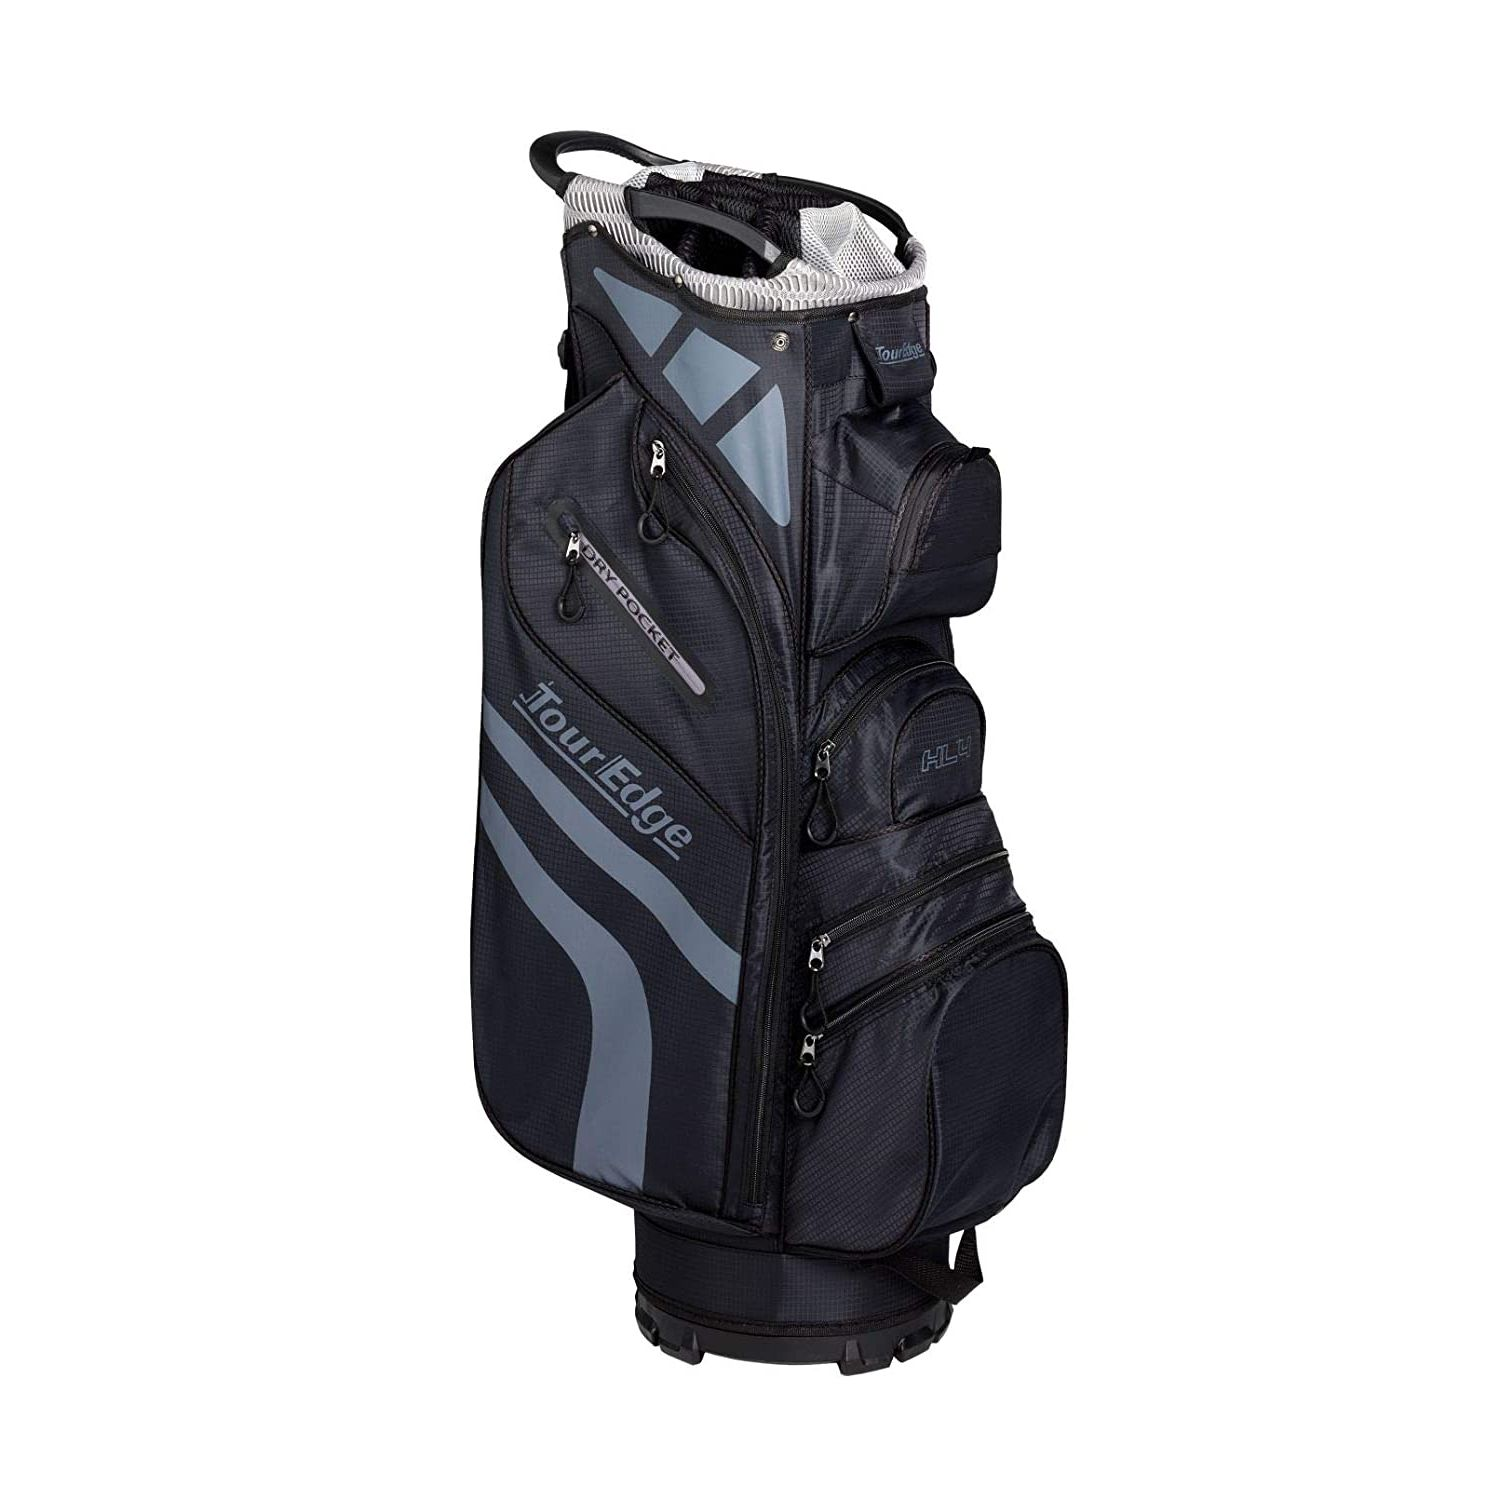 Tour Edge Hot Launch HL4 Golf Cart Bag-Black Silver